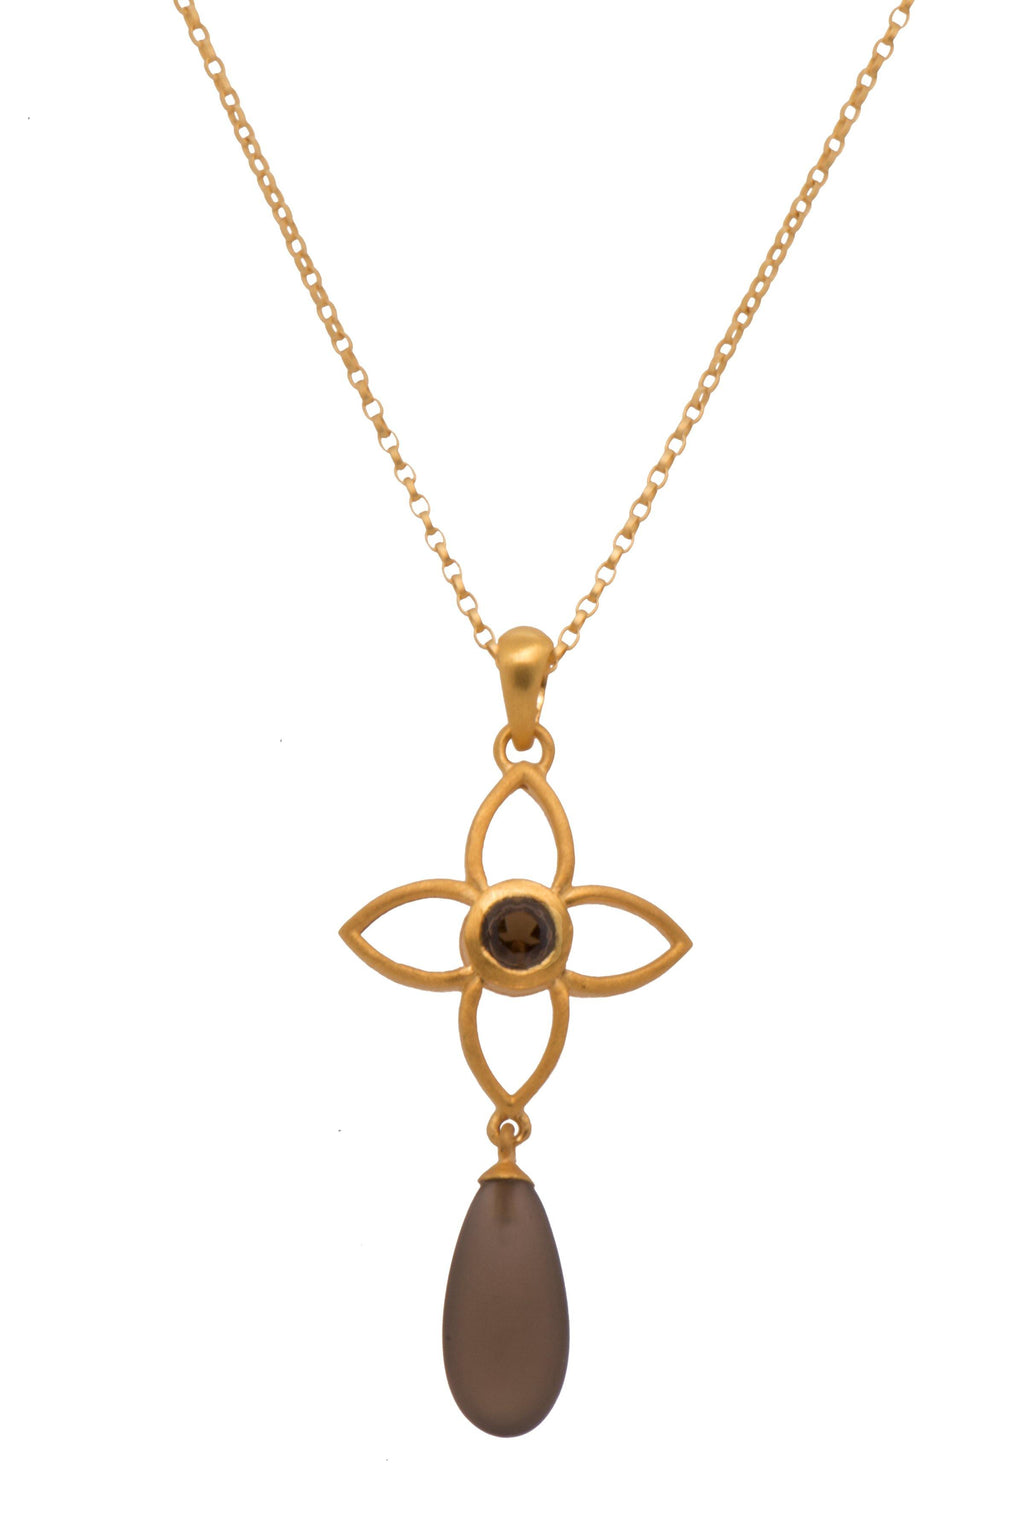 JOYP2DMSQ PENDANT- JOY FLOWER 20MM WITH DROP SMOKY QUARTZ MATTE 24K GOLD VERMEIL